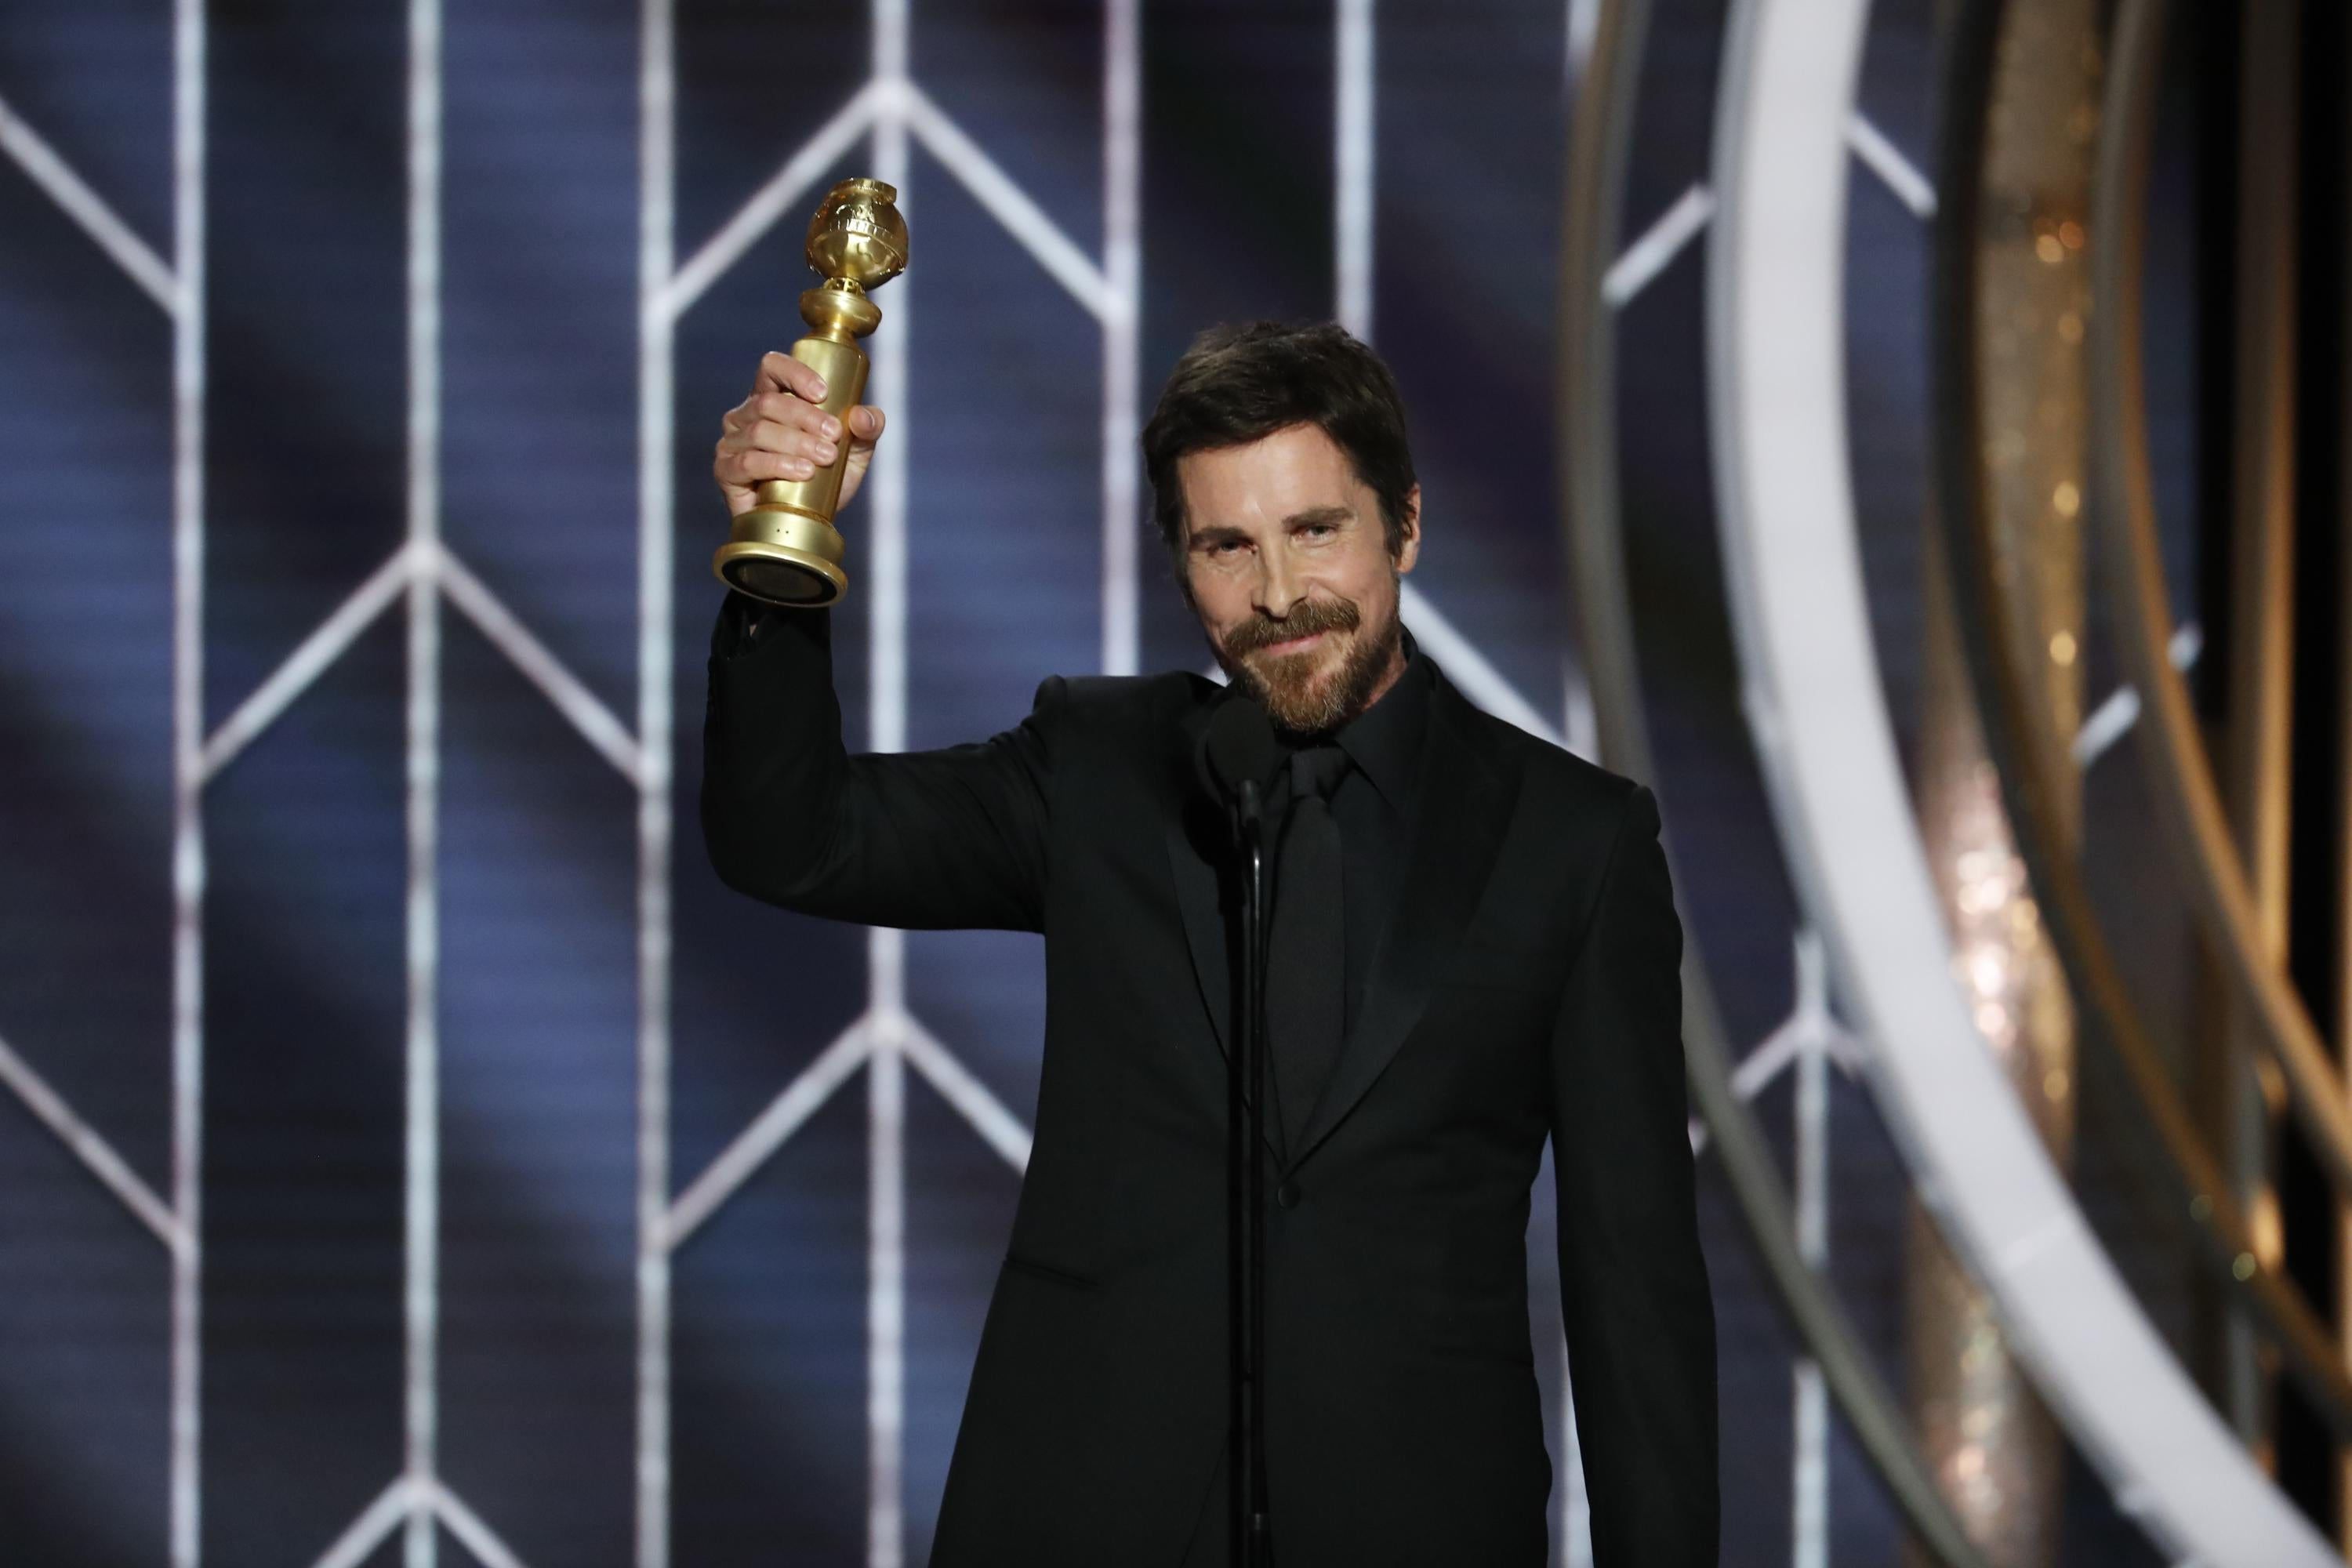 Christian Bale holding up a Golden Globe.